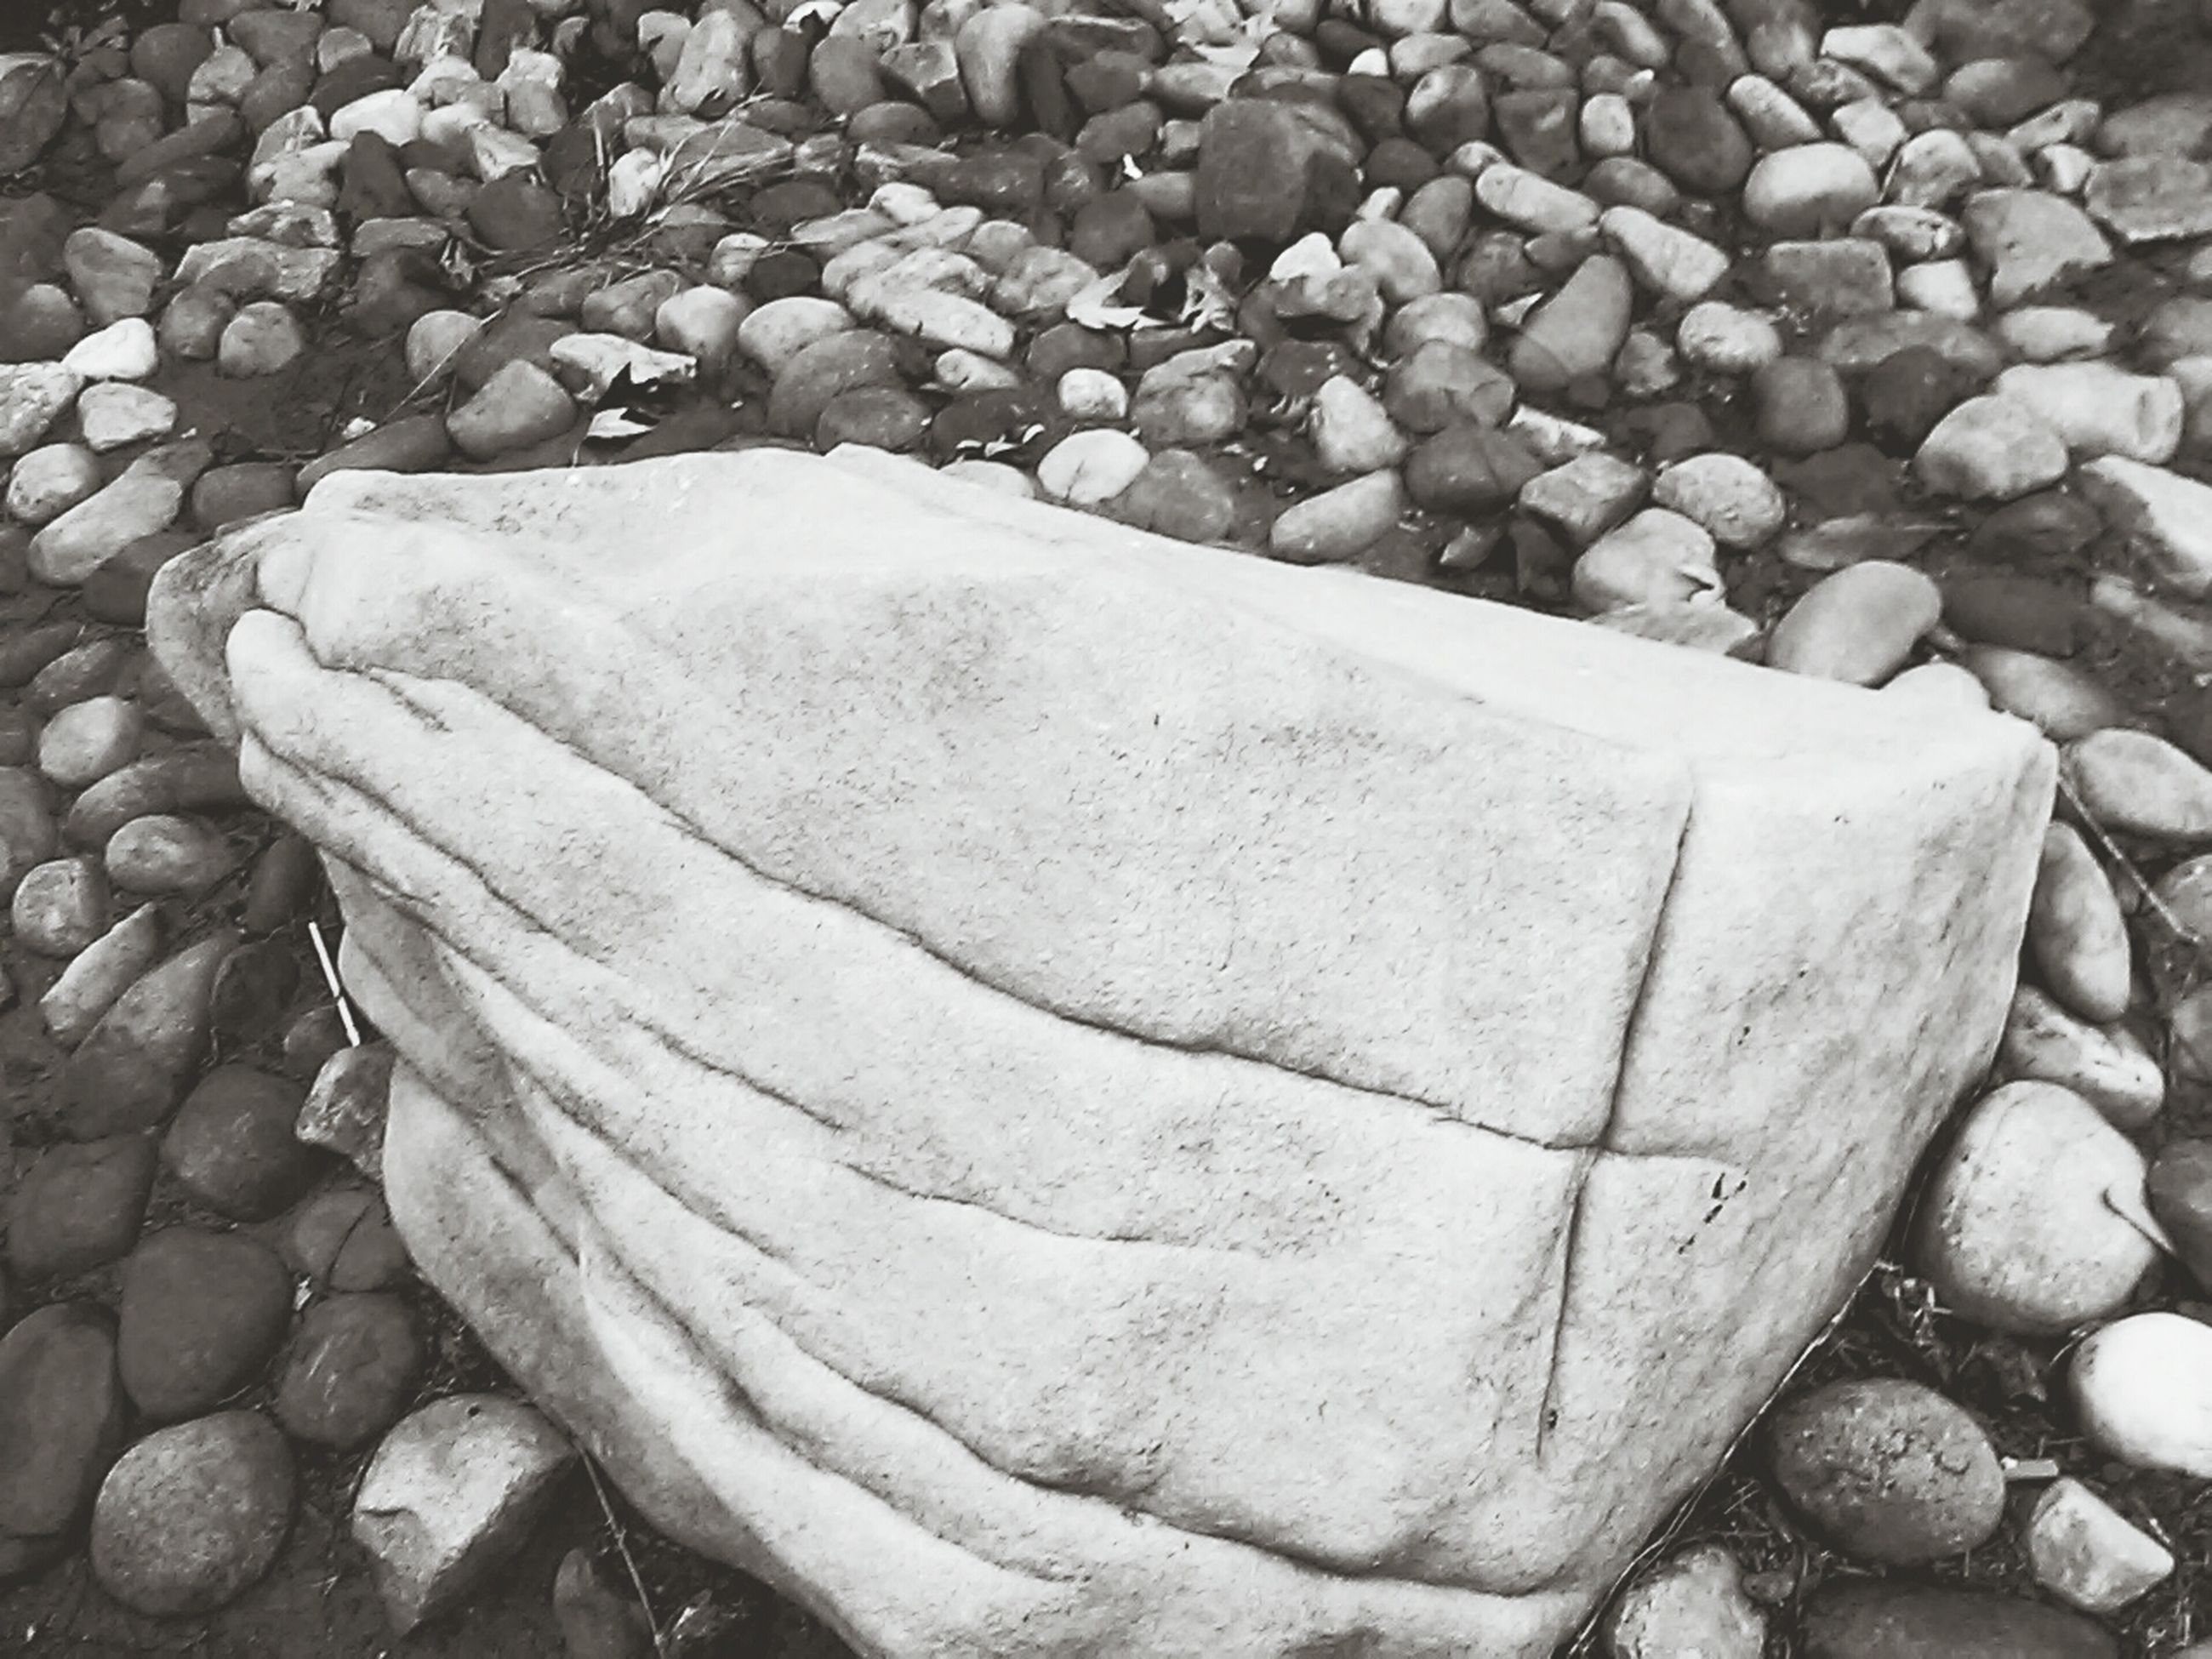 stone - object, rock - object, pebble, high angle view, textured, nature, beach, stone, stack, rock, day, outdoors, tranquility, close-up, sand, no people, abundance, large group of objects, shore, rough